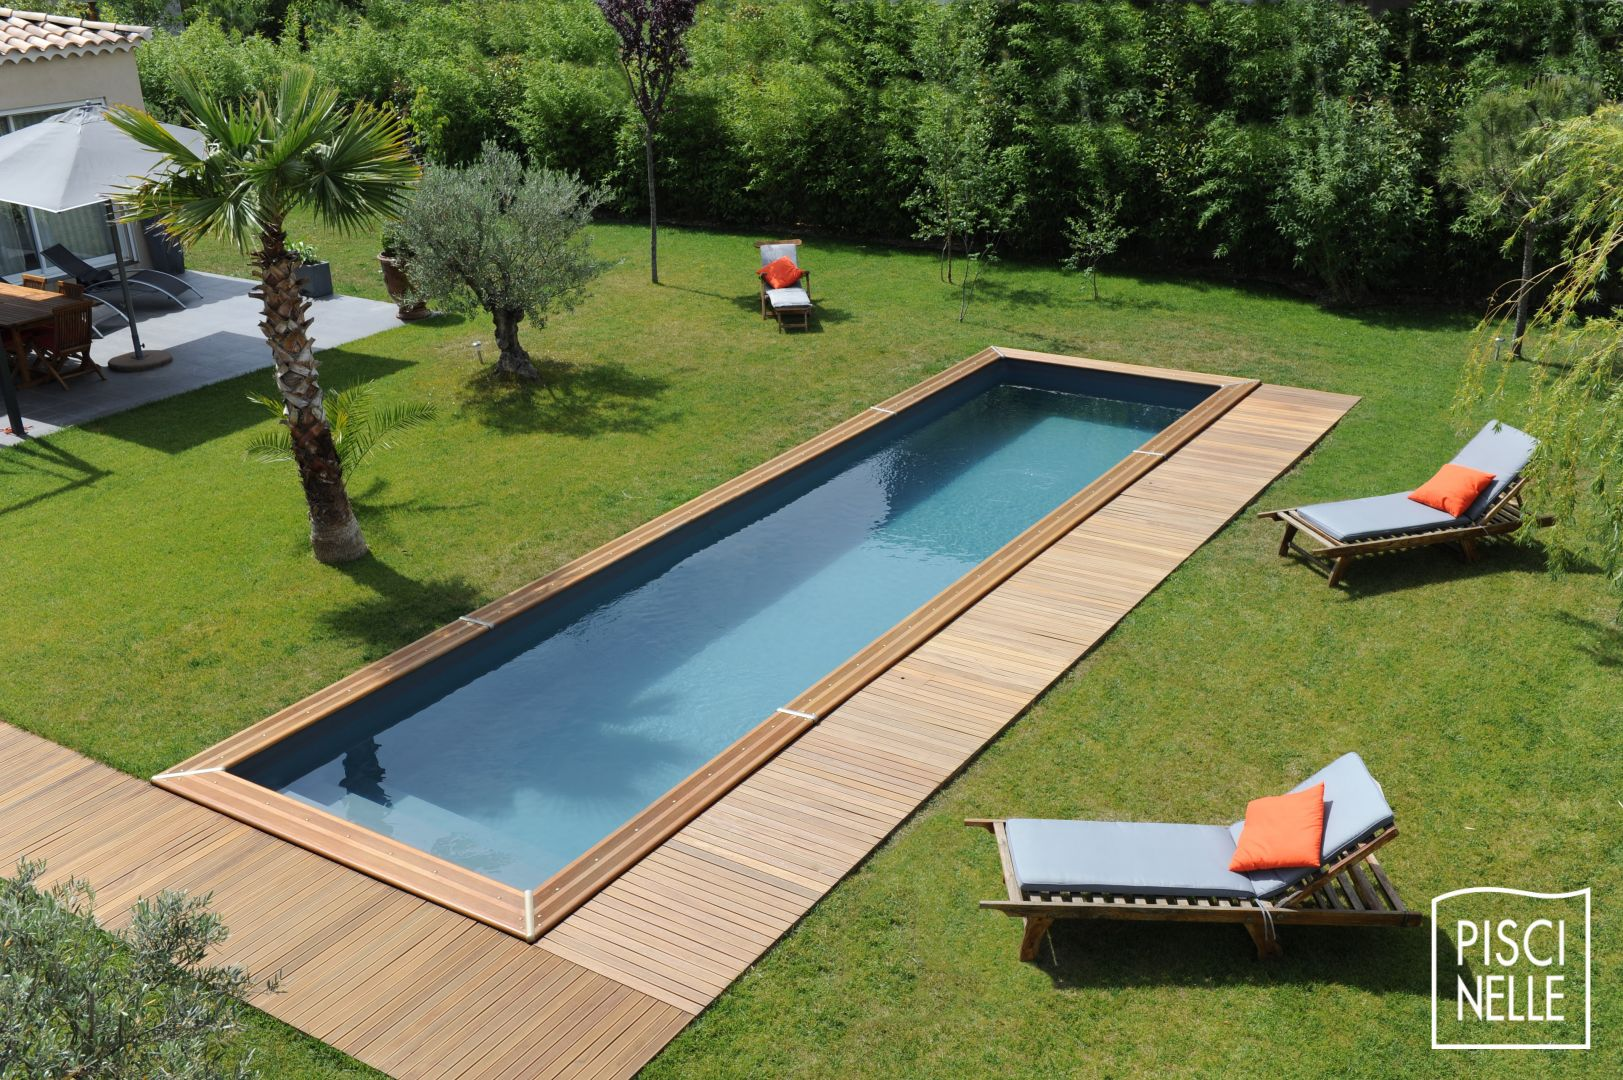 Piscine enterr e les piscines enterr es en kit par for Piscine hors sol taille